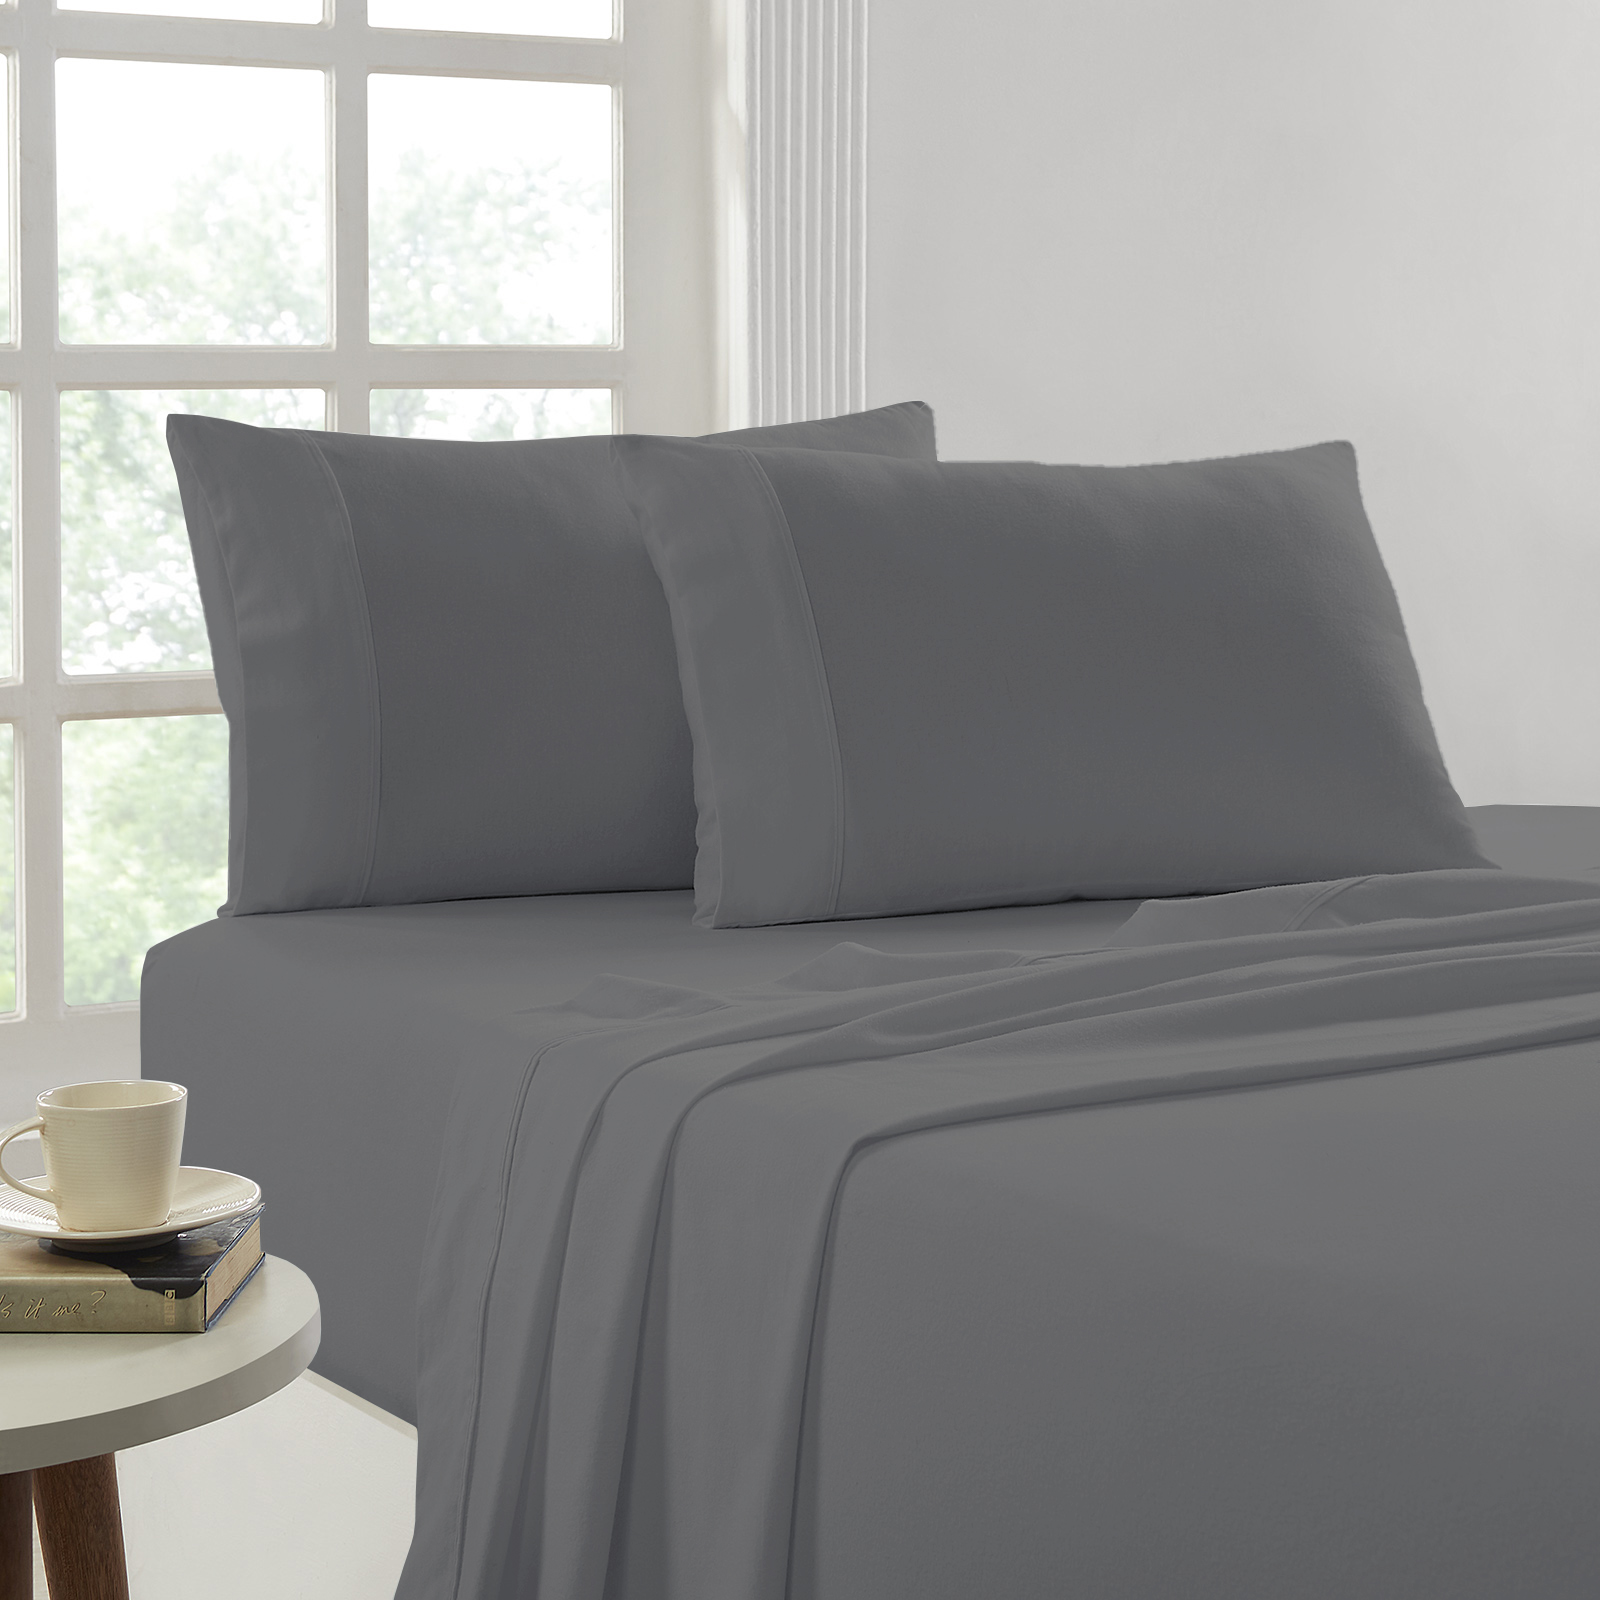 In2linen Flannel Queen Bed Sheet Sets Egyptian Cotton